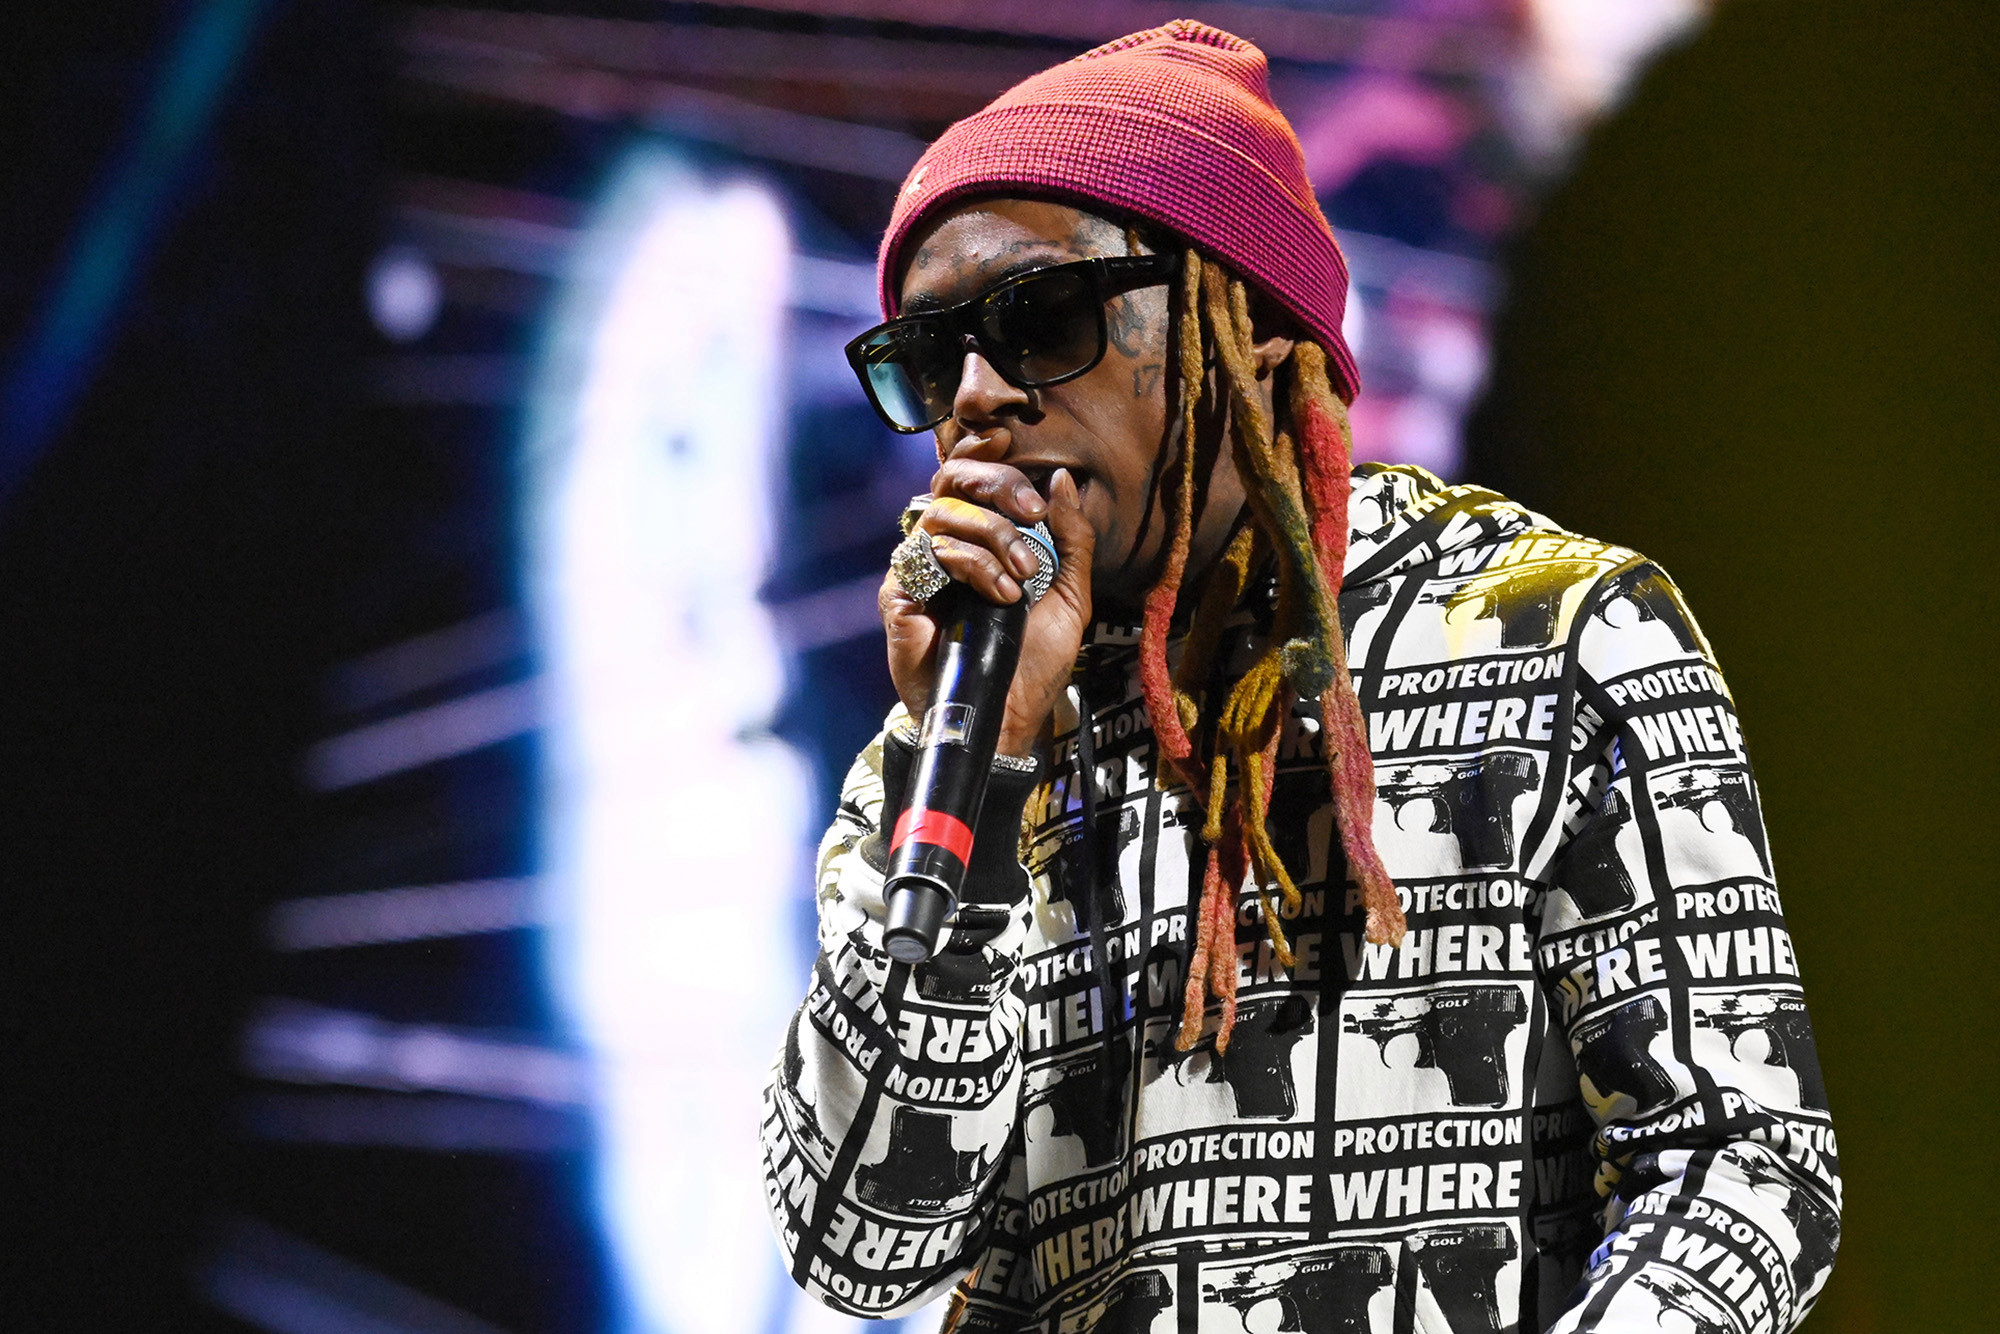 Lil Wayne puts on intimate show at Art Basel party